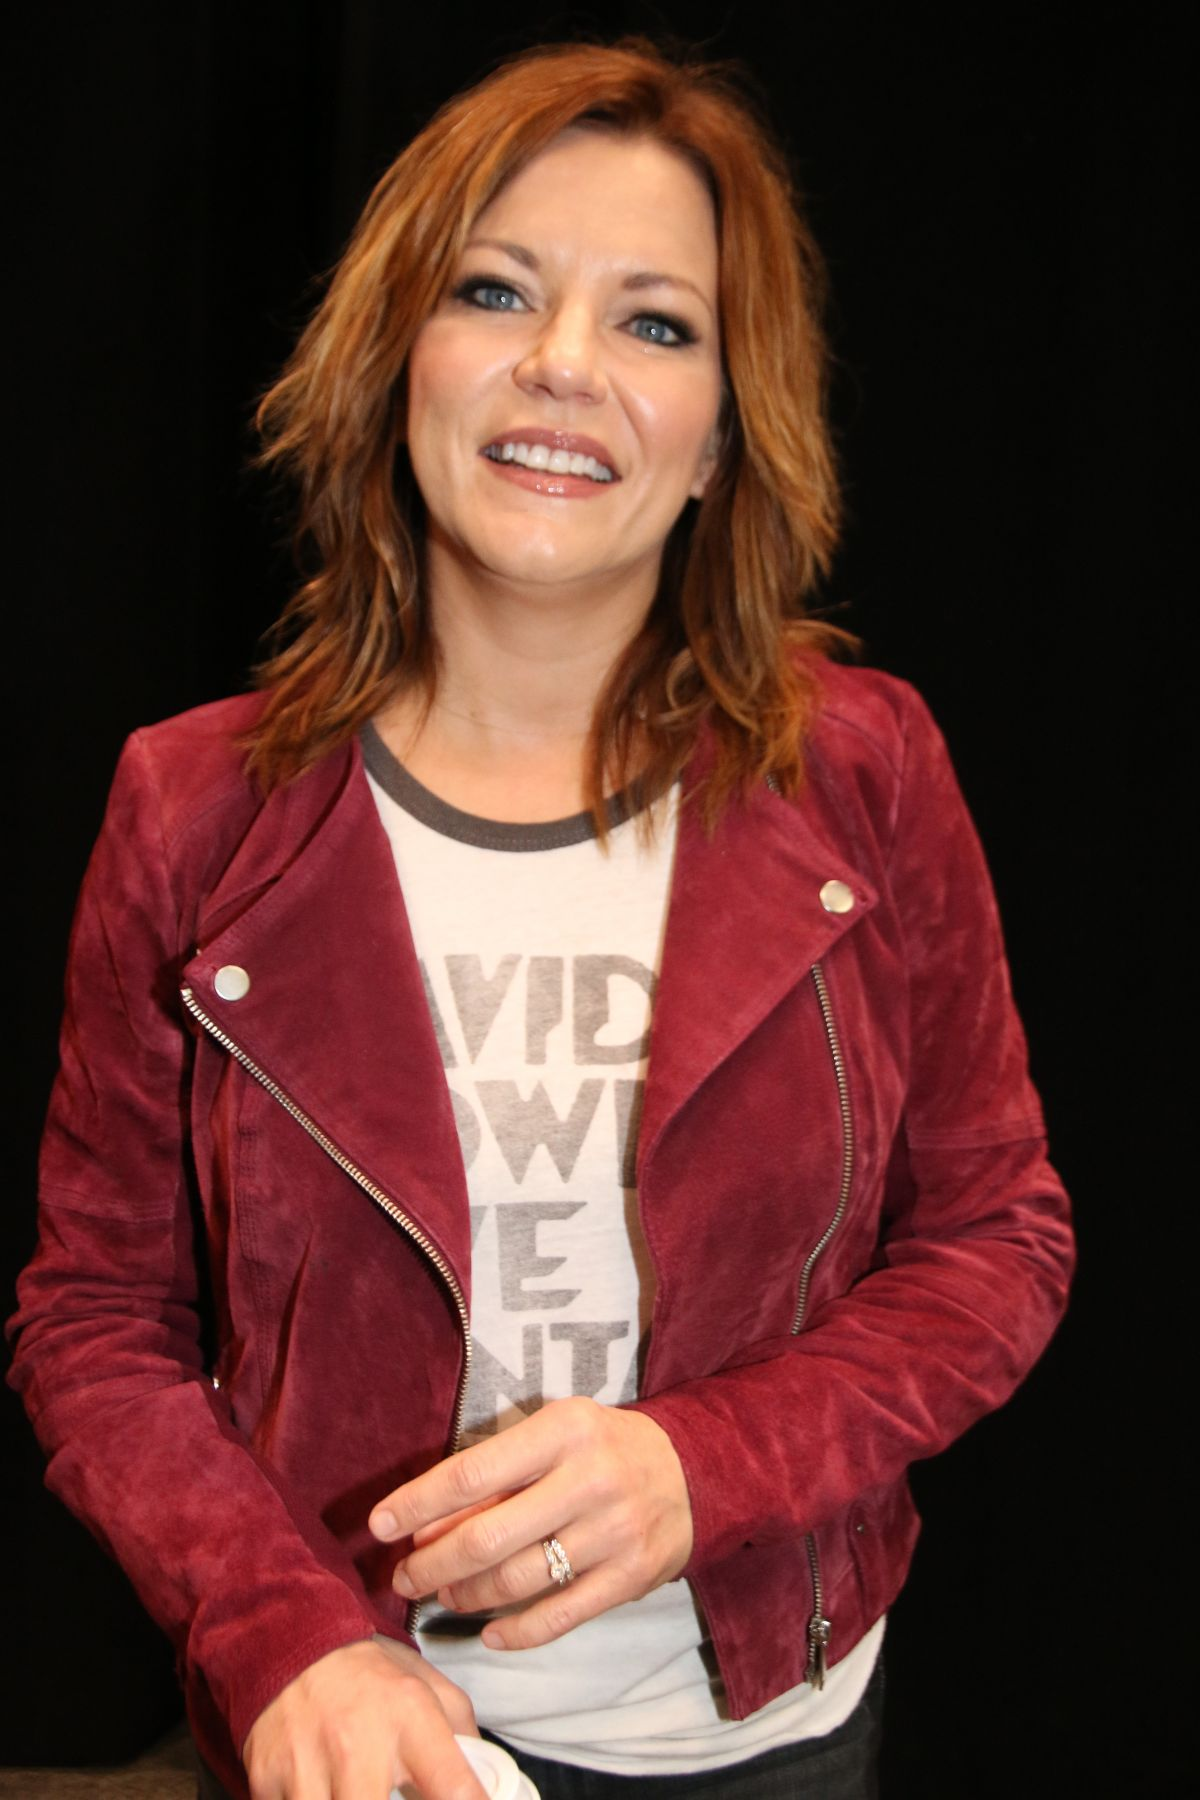 Martina McBride: Her Early life, Discography, and More